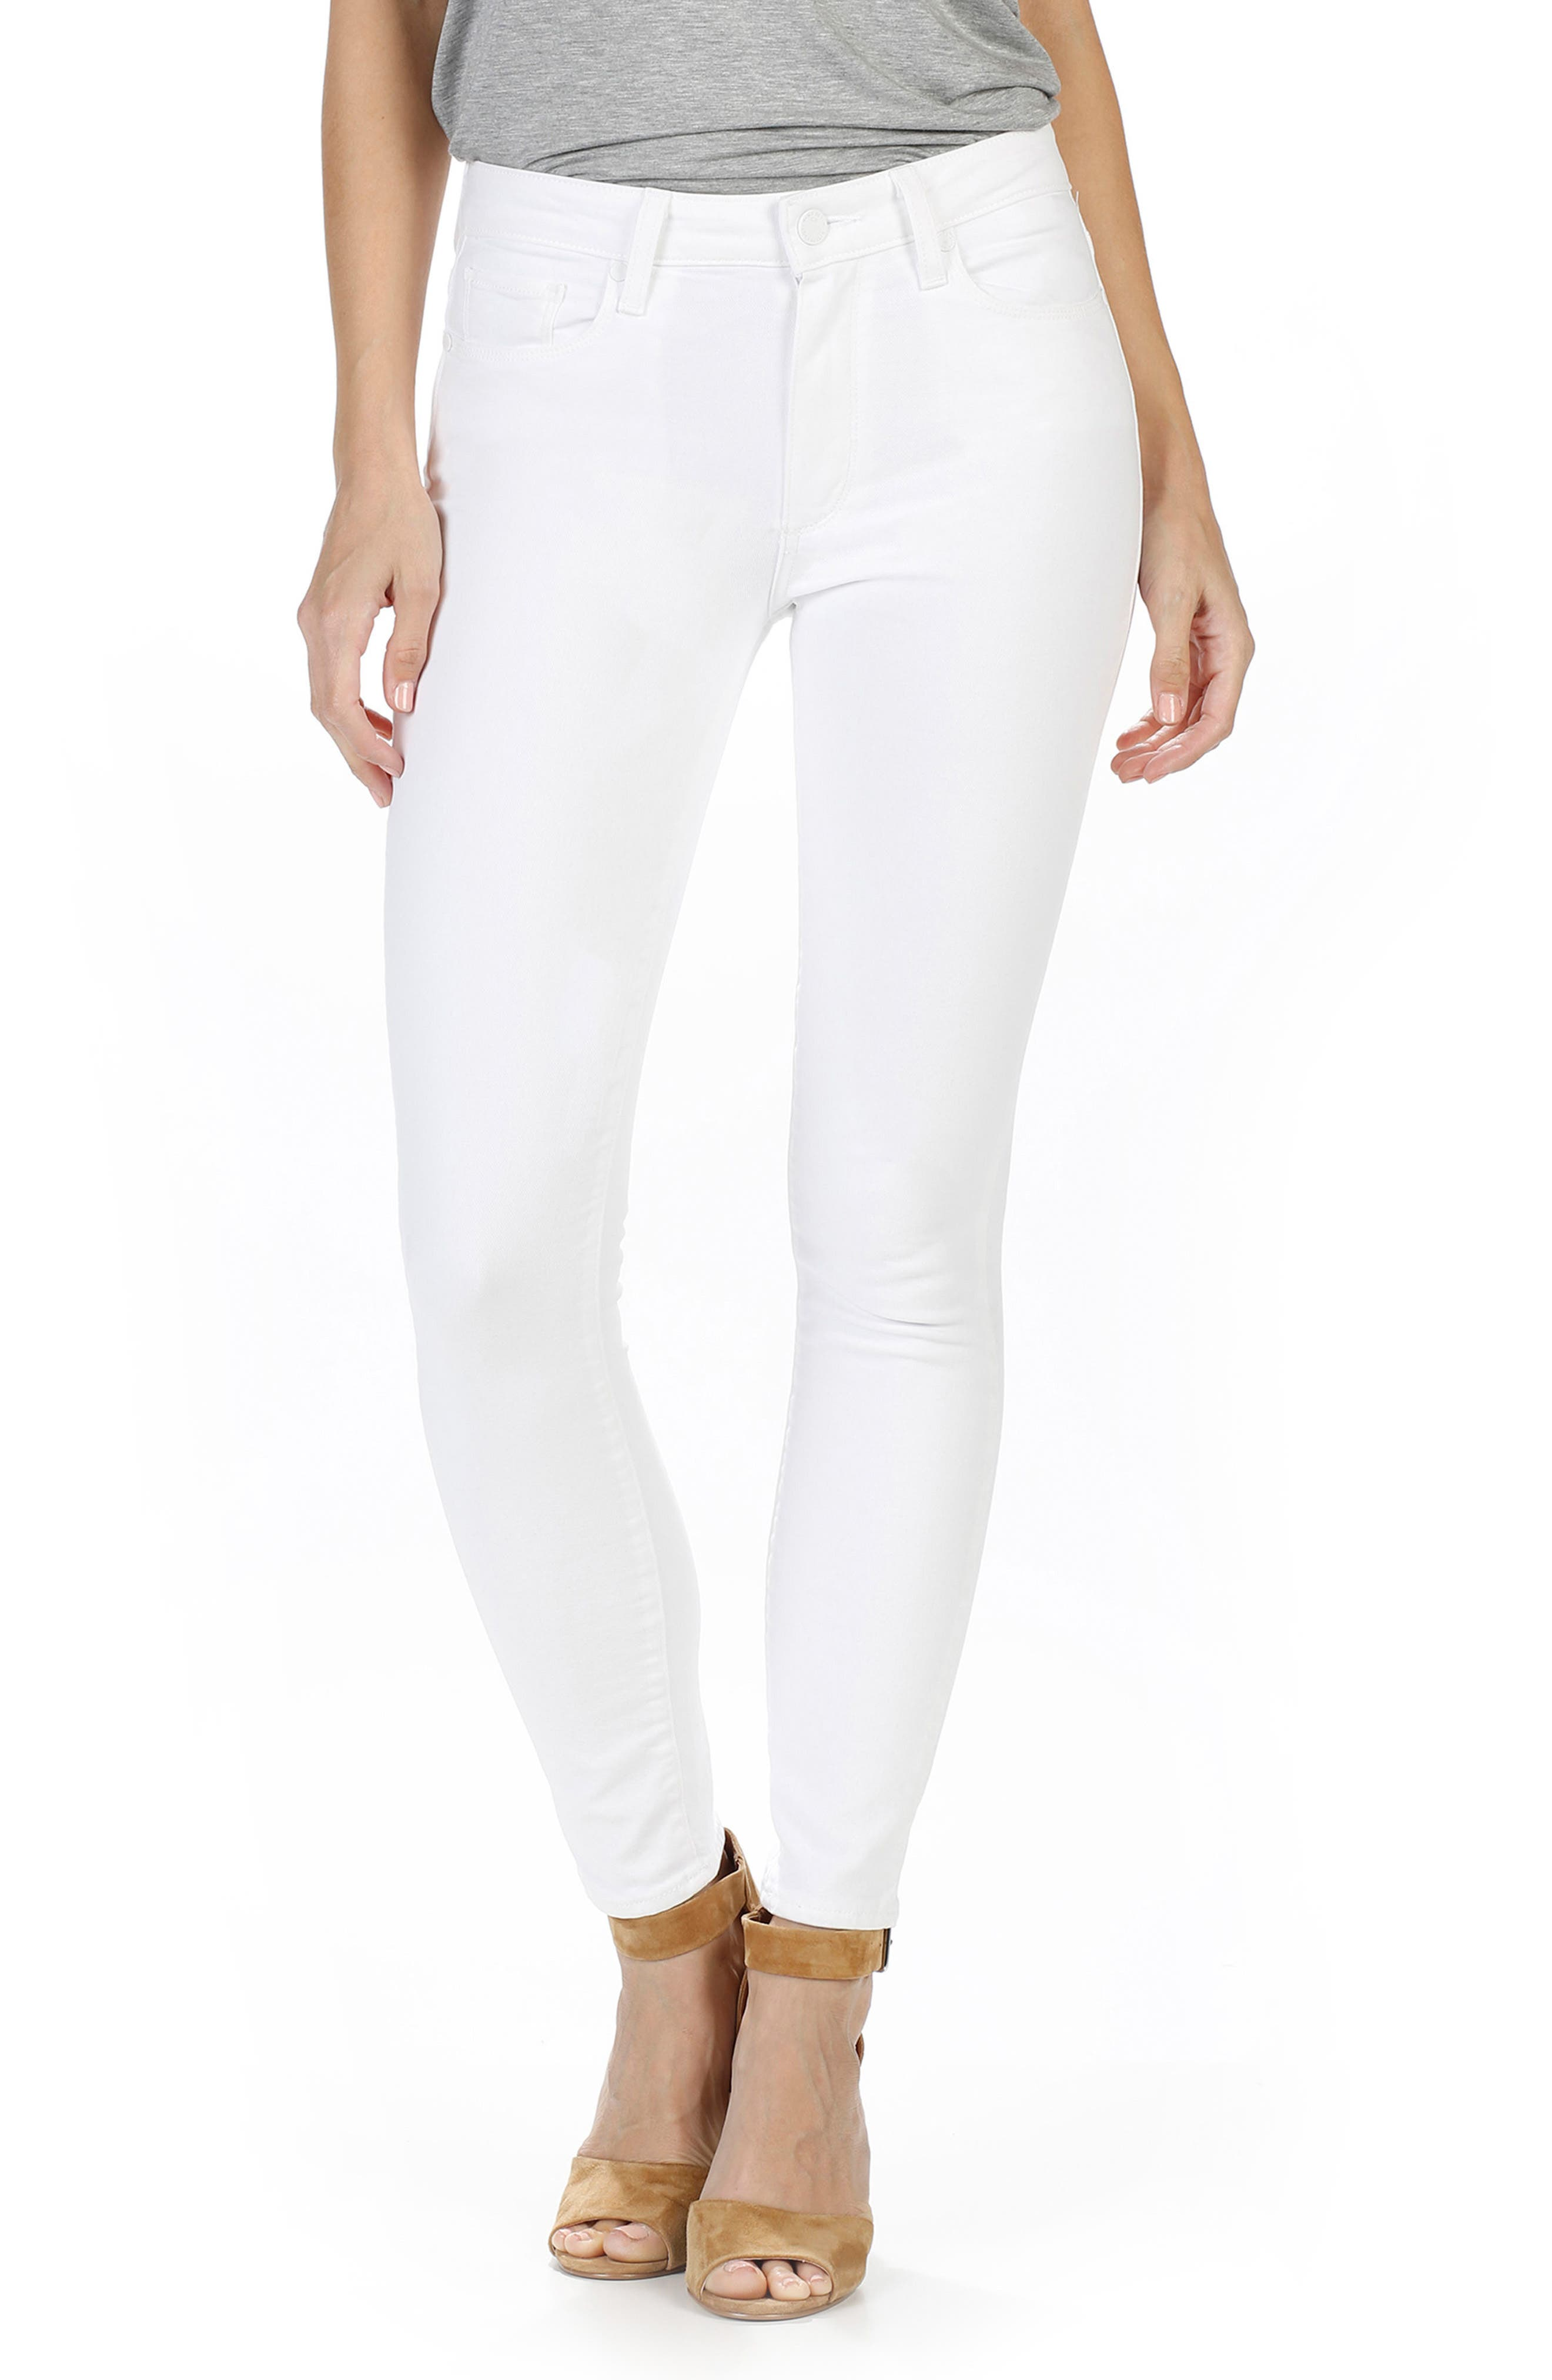 Hoxton High Waist Ankle Skinny Jeans,                             Main thumbnail 1, color,                             Optic White